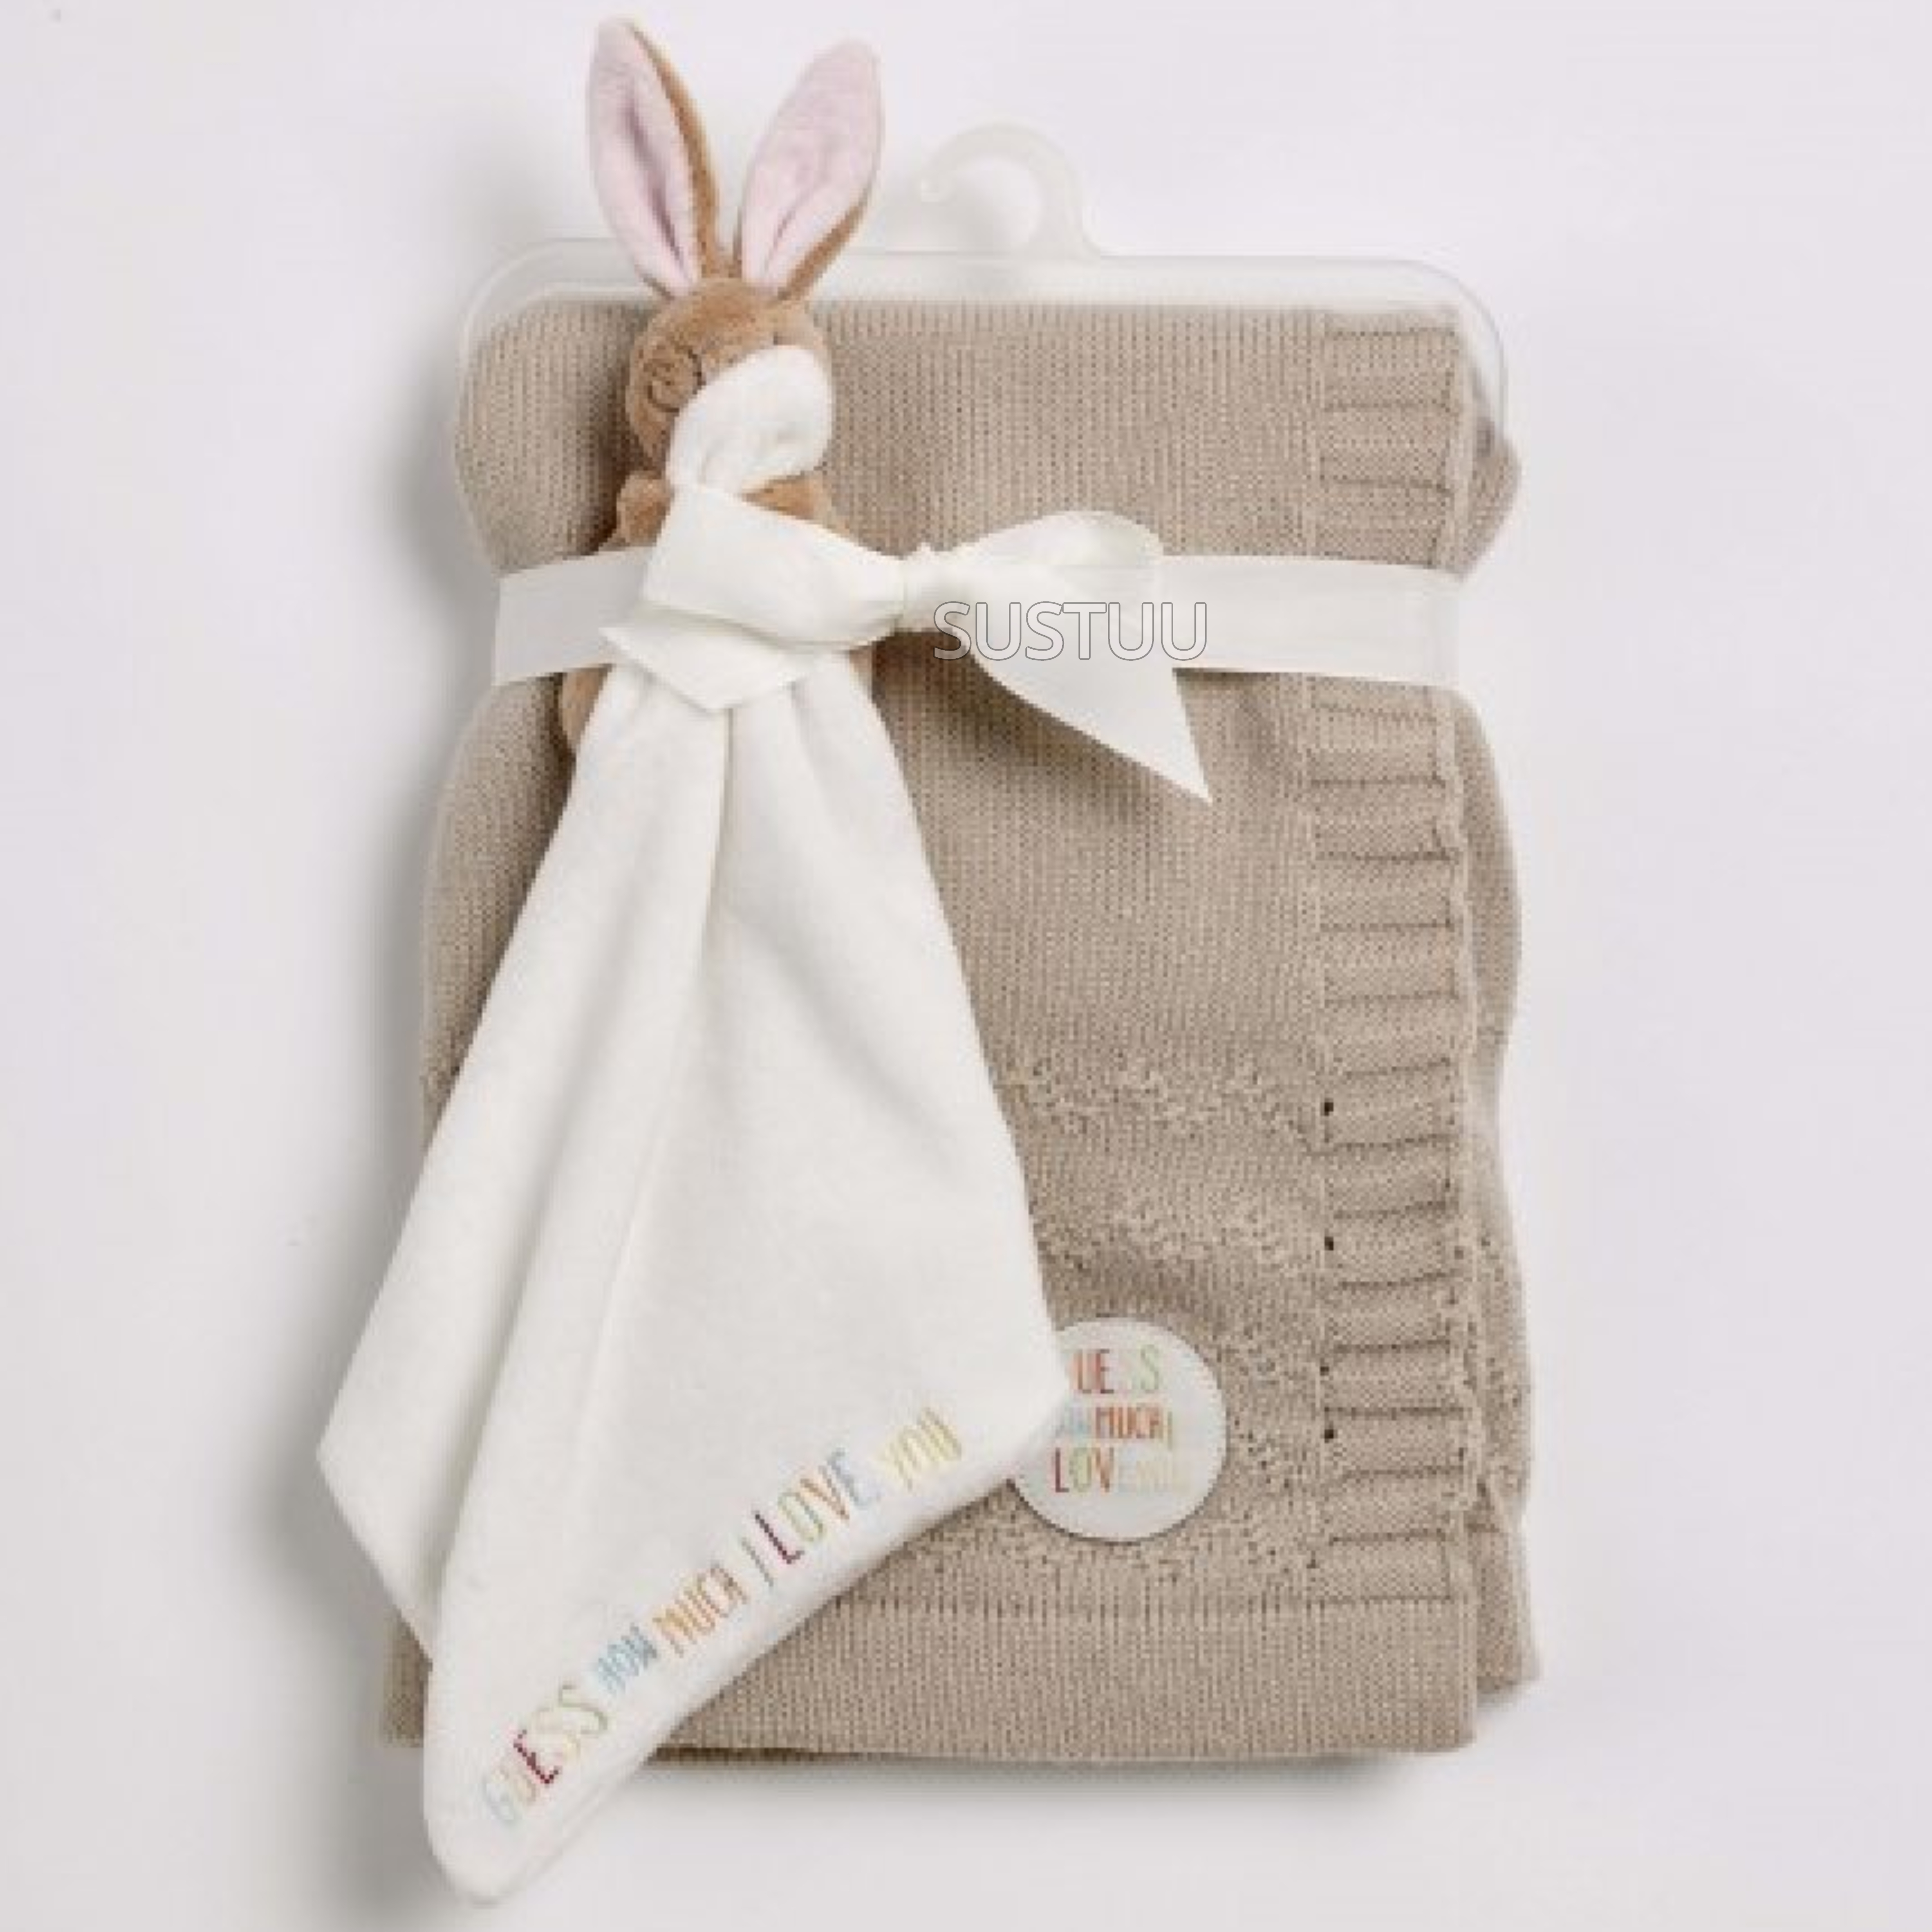 Guess How Much I Love You Knitted Blanket Gift Set | Baby's Soft Comforter | +0 Month